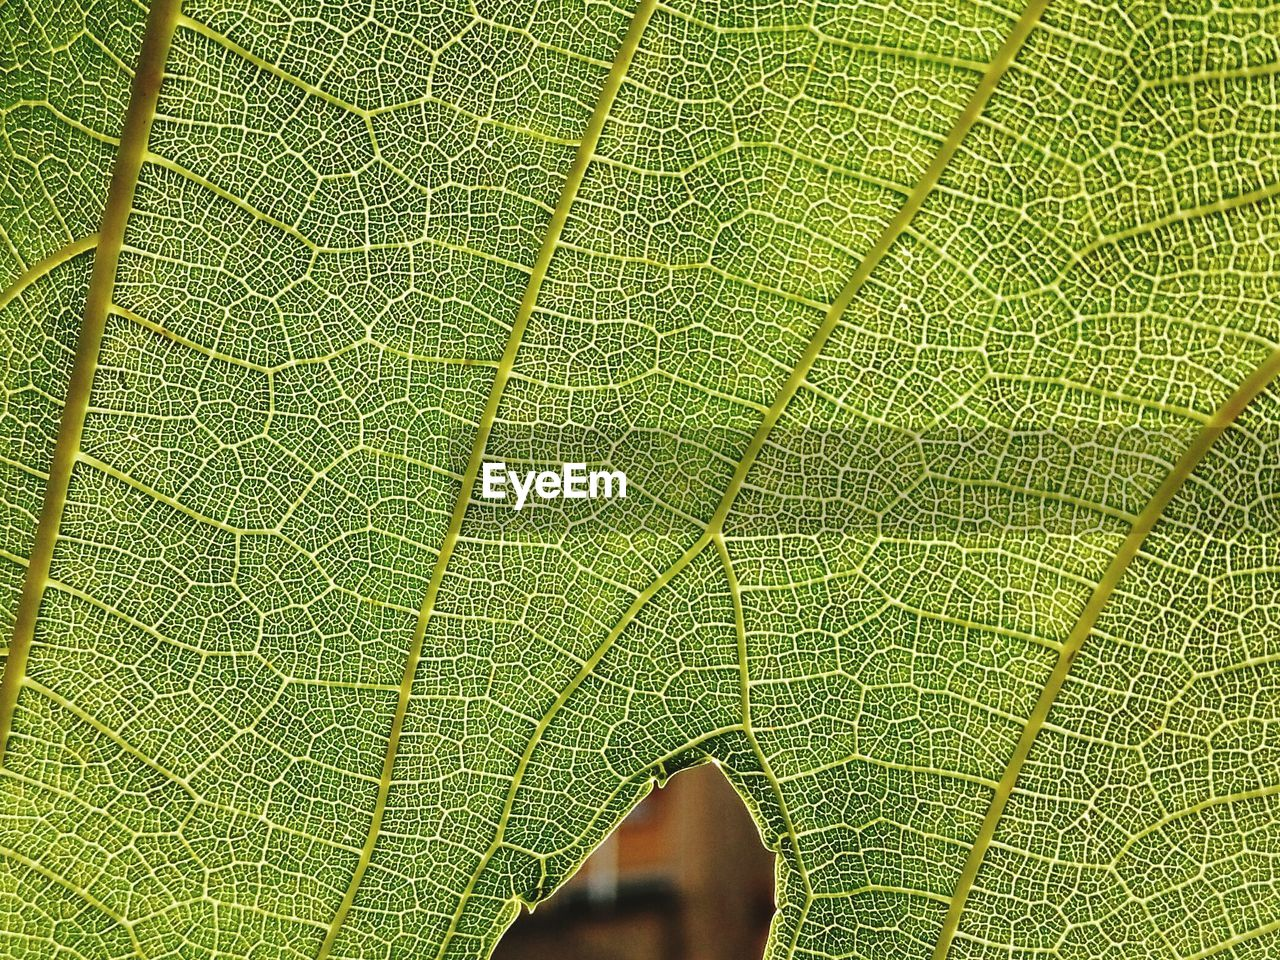 leaf, plant part, green color, close-up, backgrounds, full frame, leaf vein, nature, plant, natural pattern, no people, macro, beauty in nature, outdoors, extreme close-up, textured, growth, freshness, botany, fragility